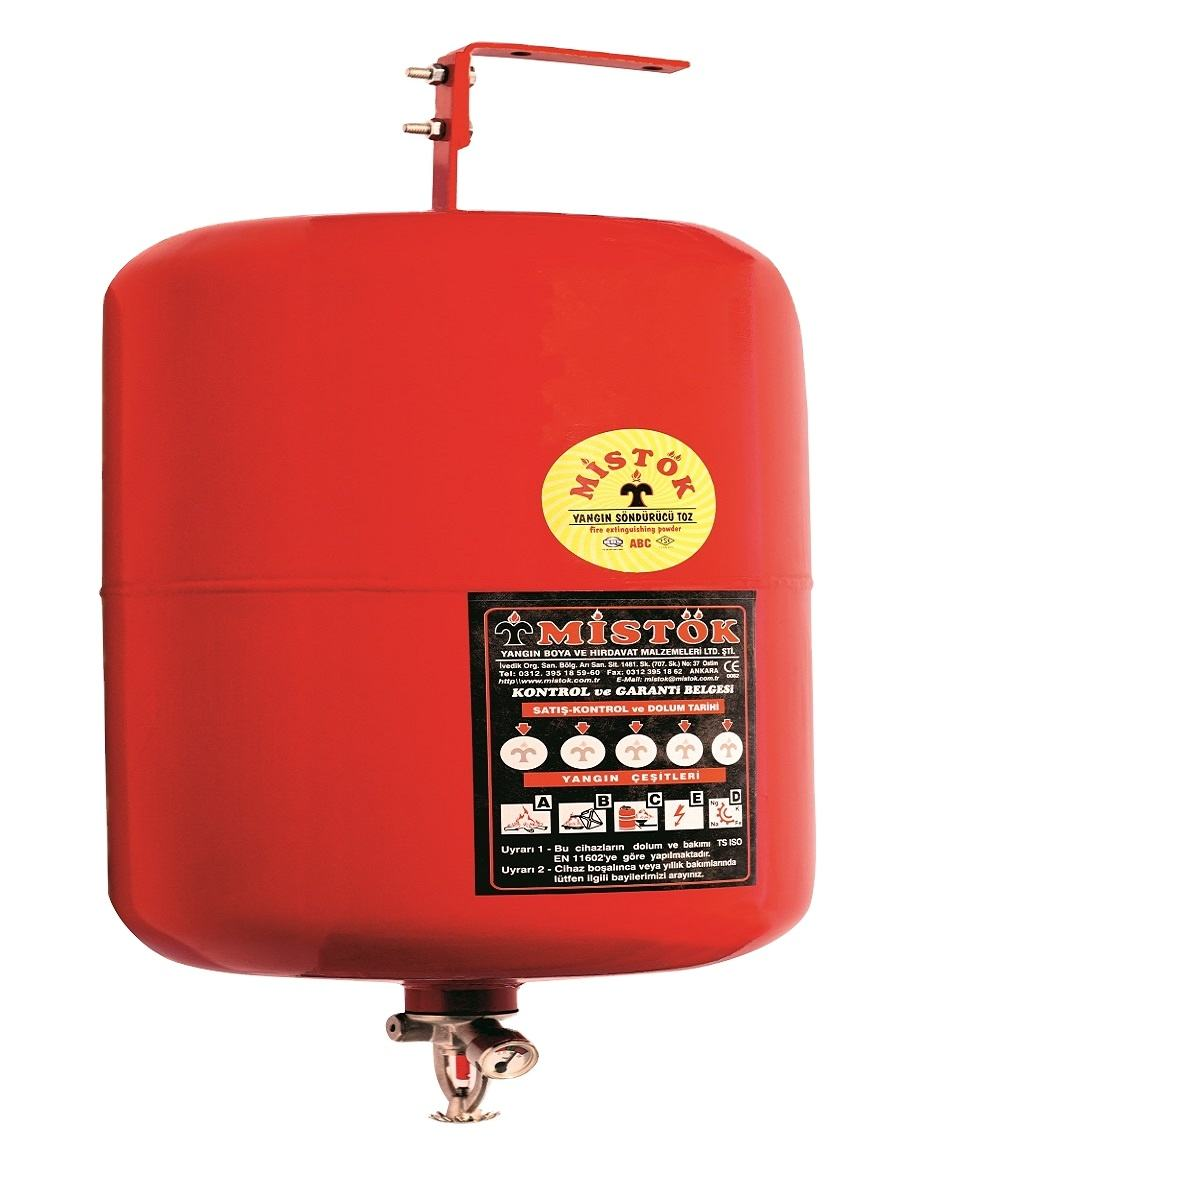 A-12 12 kg fire extinguisher ceiling system 40% 12 kg CE Approval ABC Dry Chemical Powder Automatic Hanging Ceiling Mounted